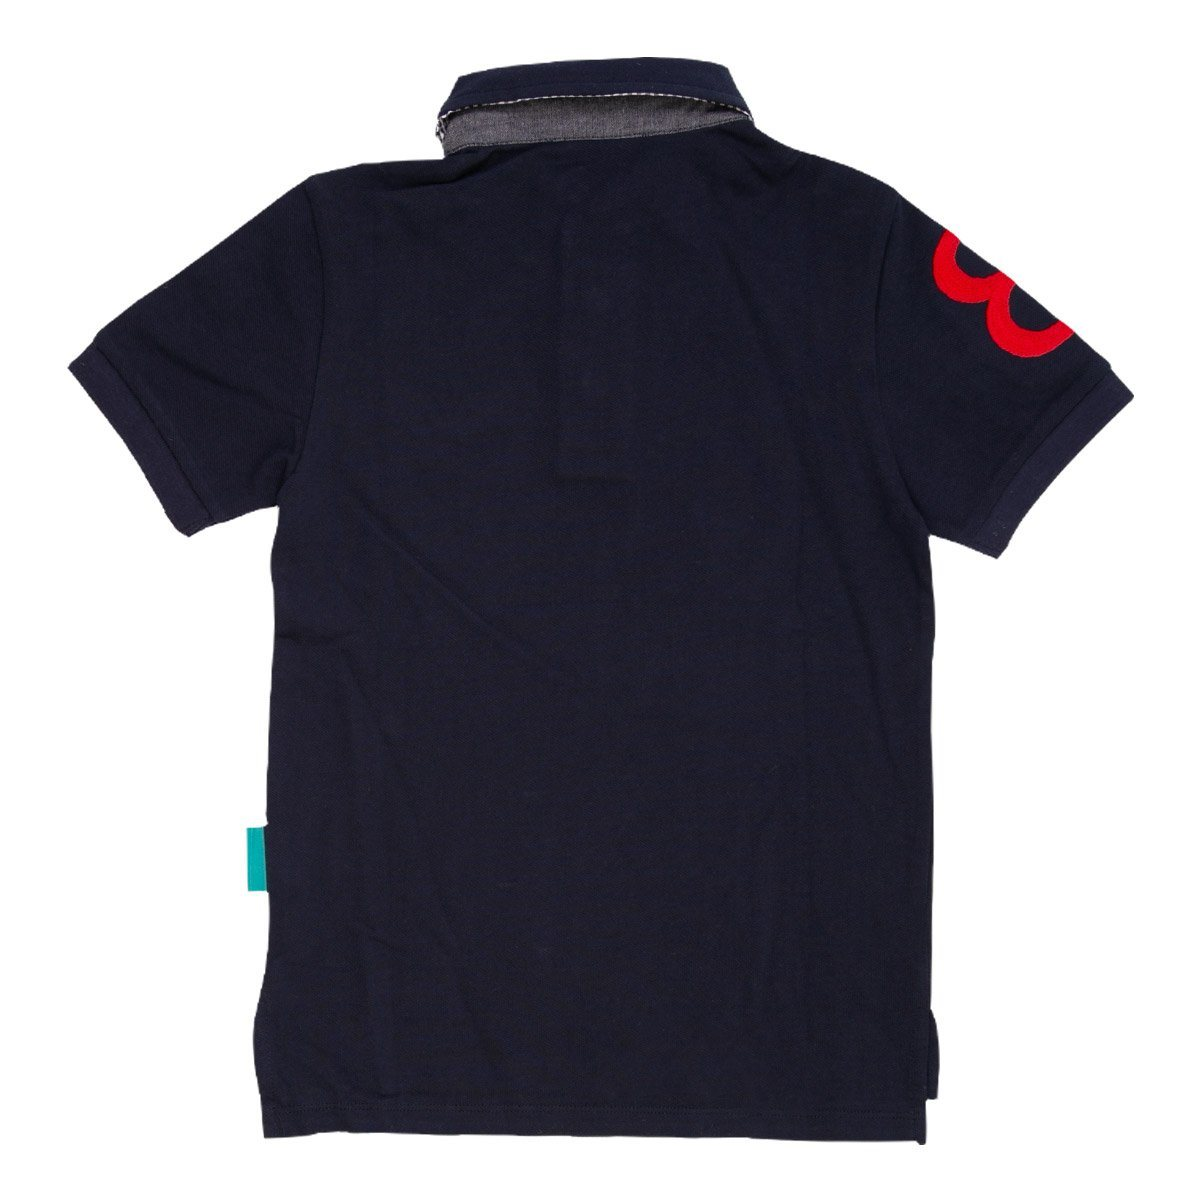 Angels Luxury Kidswear Oxford Polos For Boys, Navy Blue